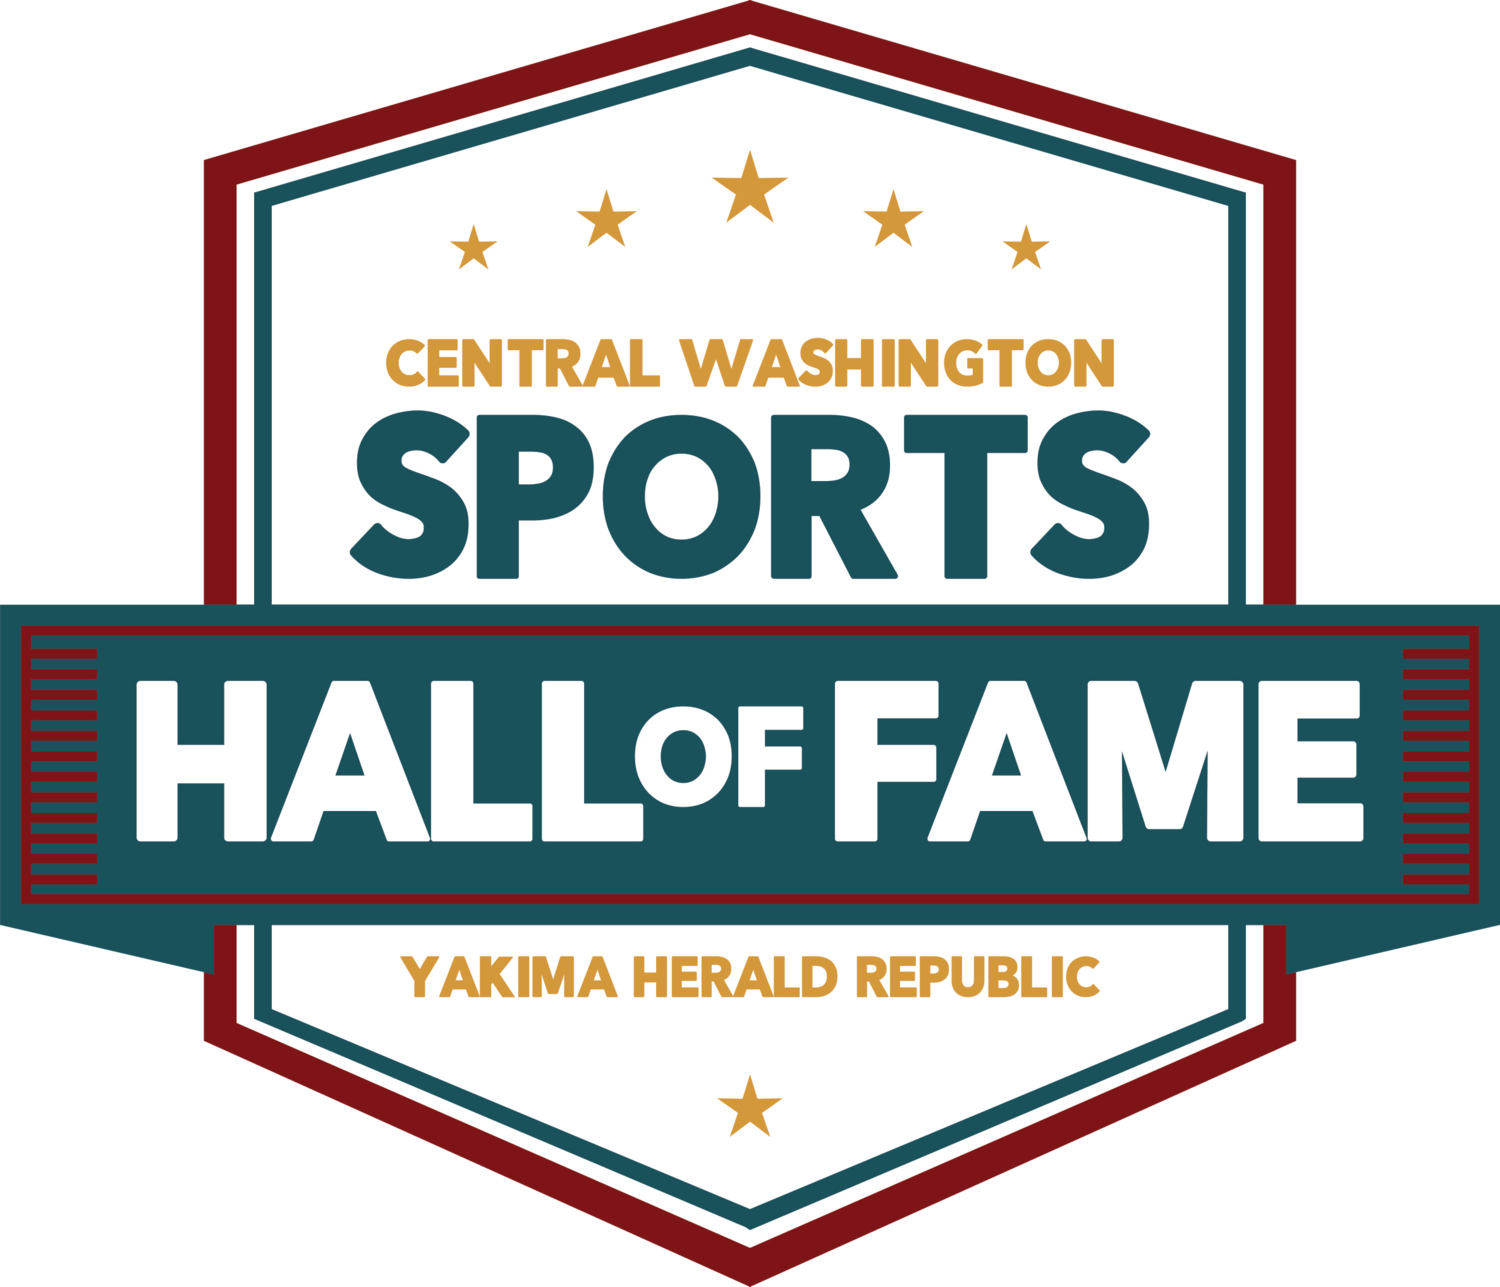 Central Washington Sports Hall of Fame